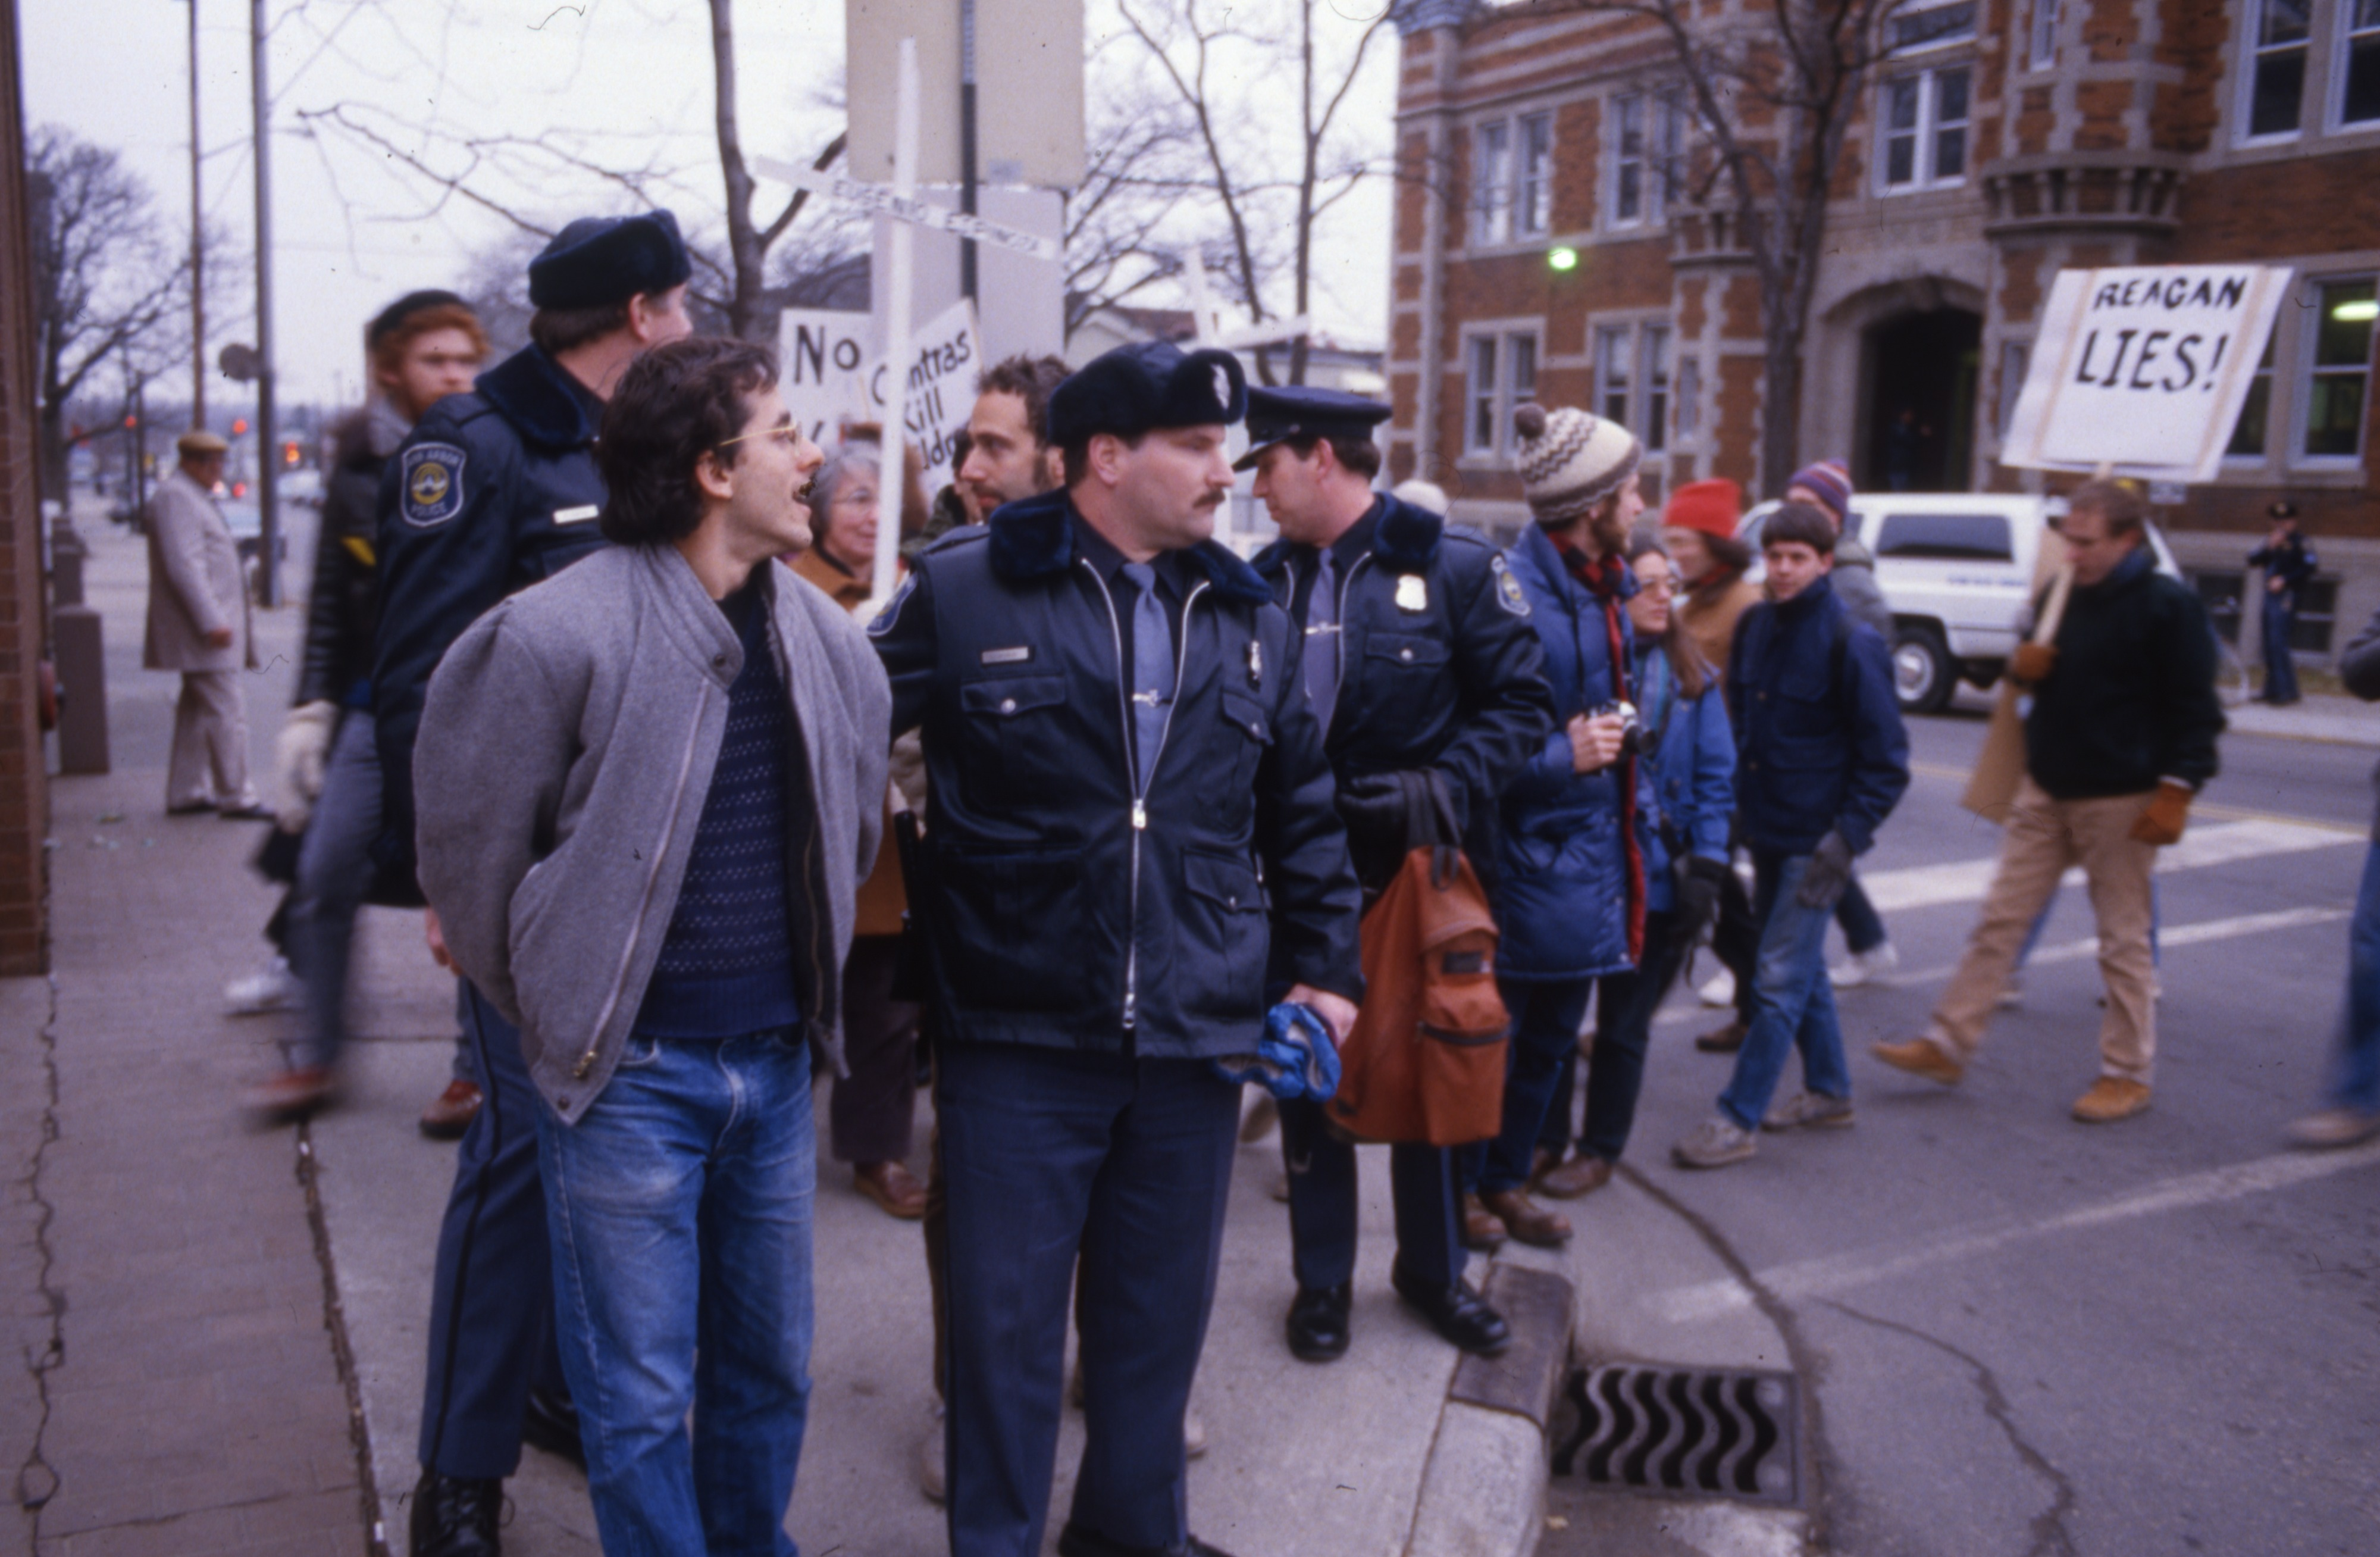 Ann Arbor Police Arrest Dean Baker Following Protest at Armory Building, January 1987 image